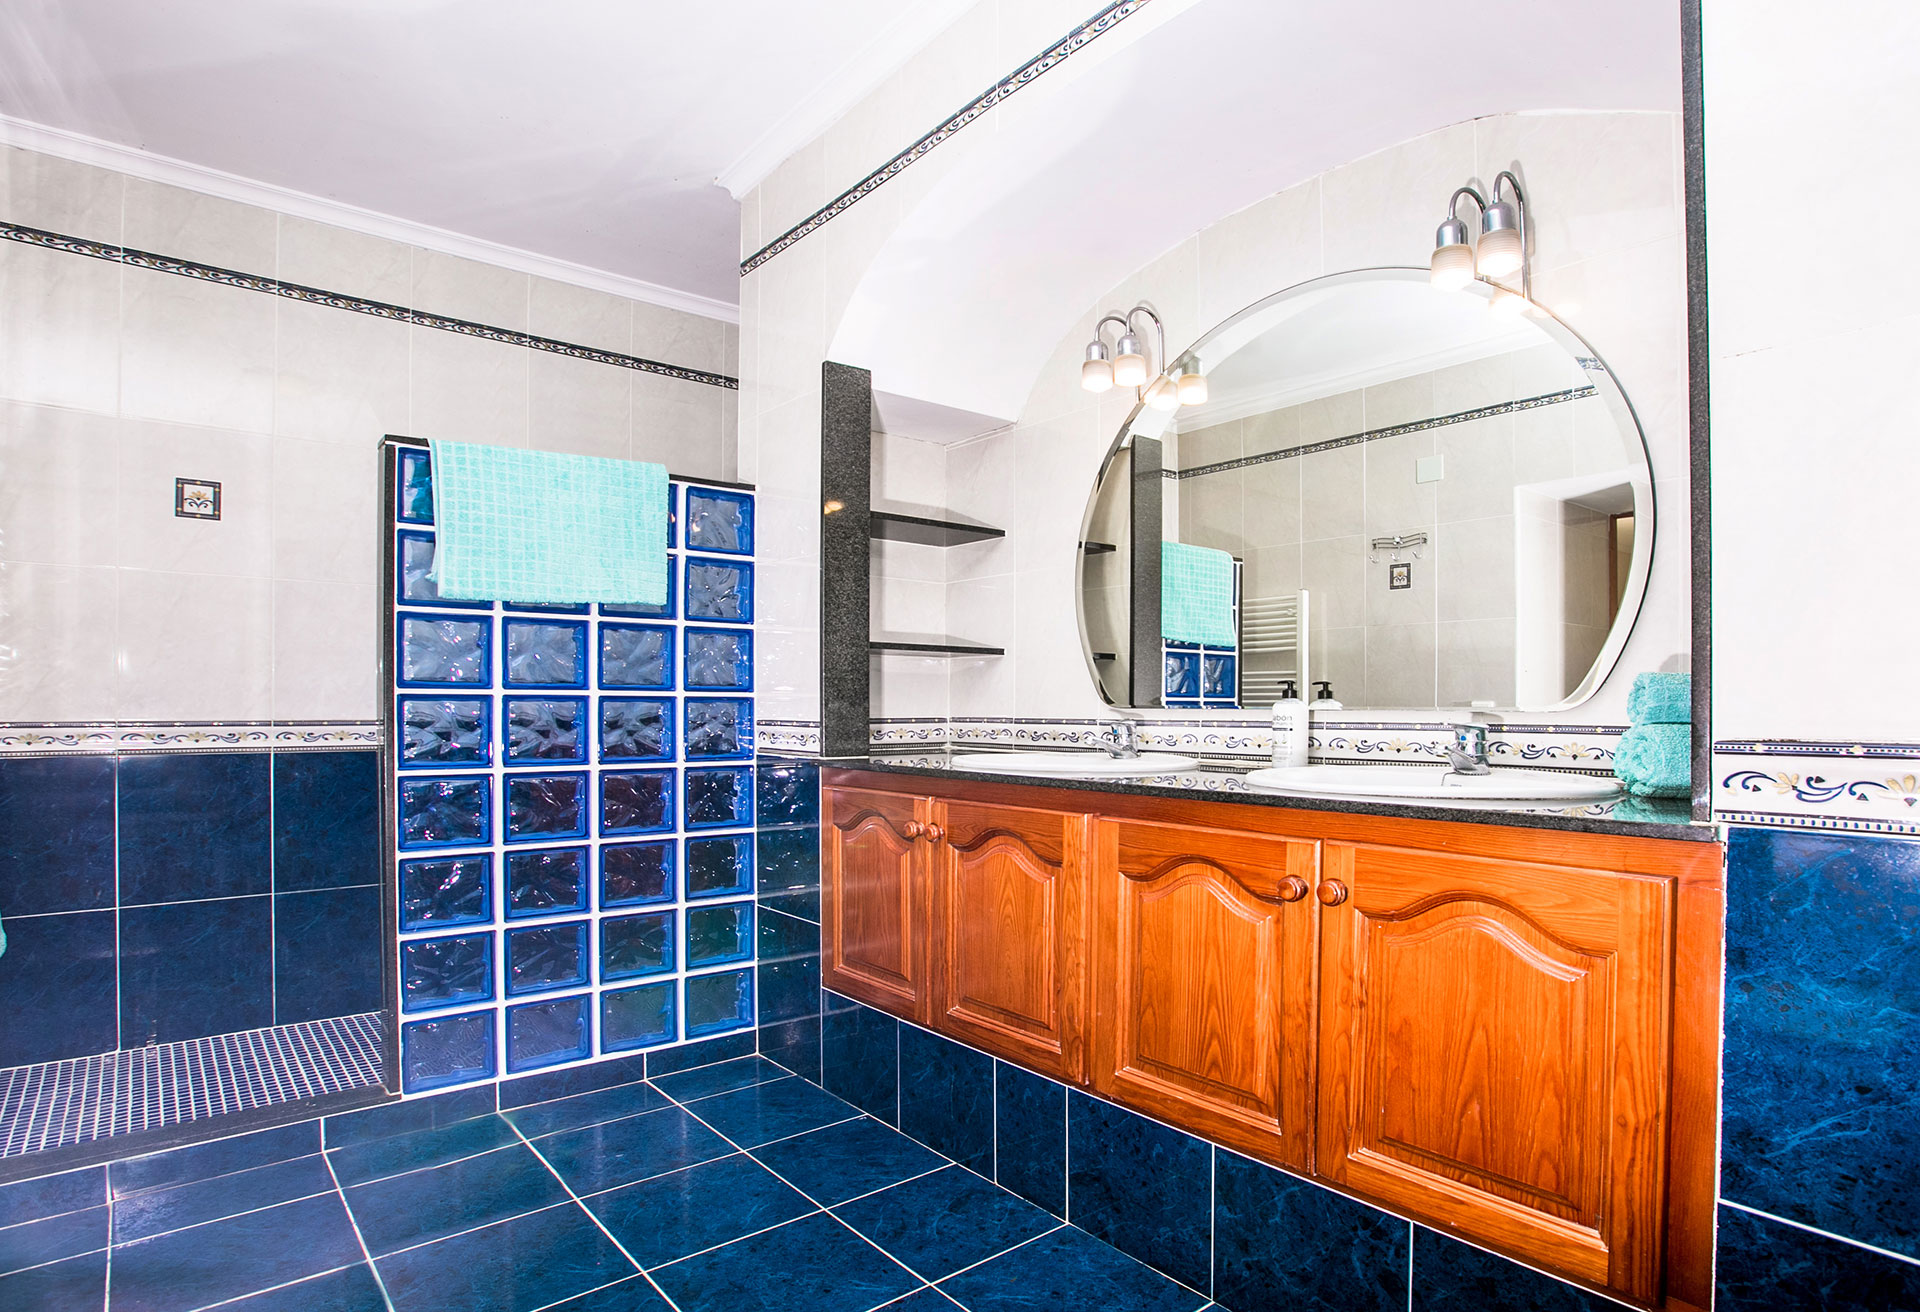 javea holiday rentals Luxurious bathroom